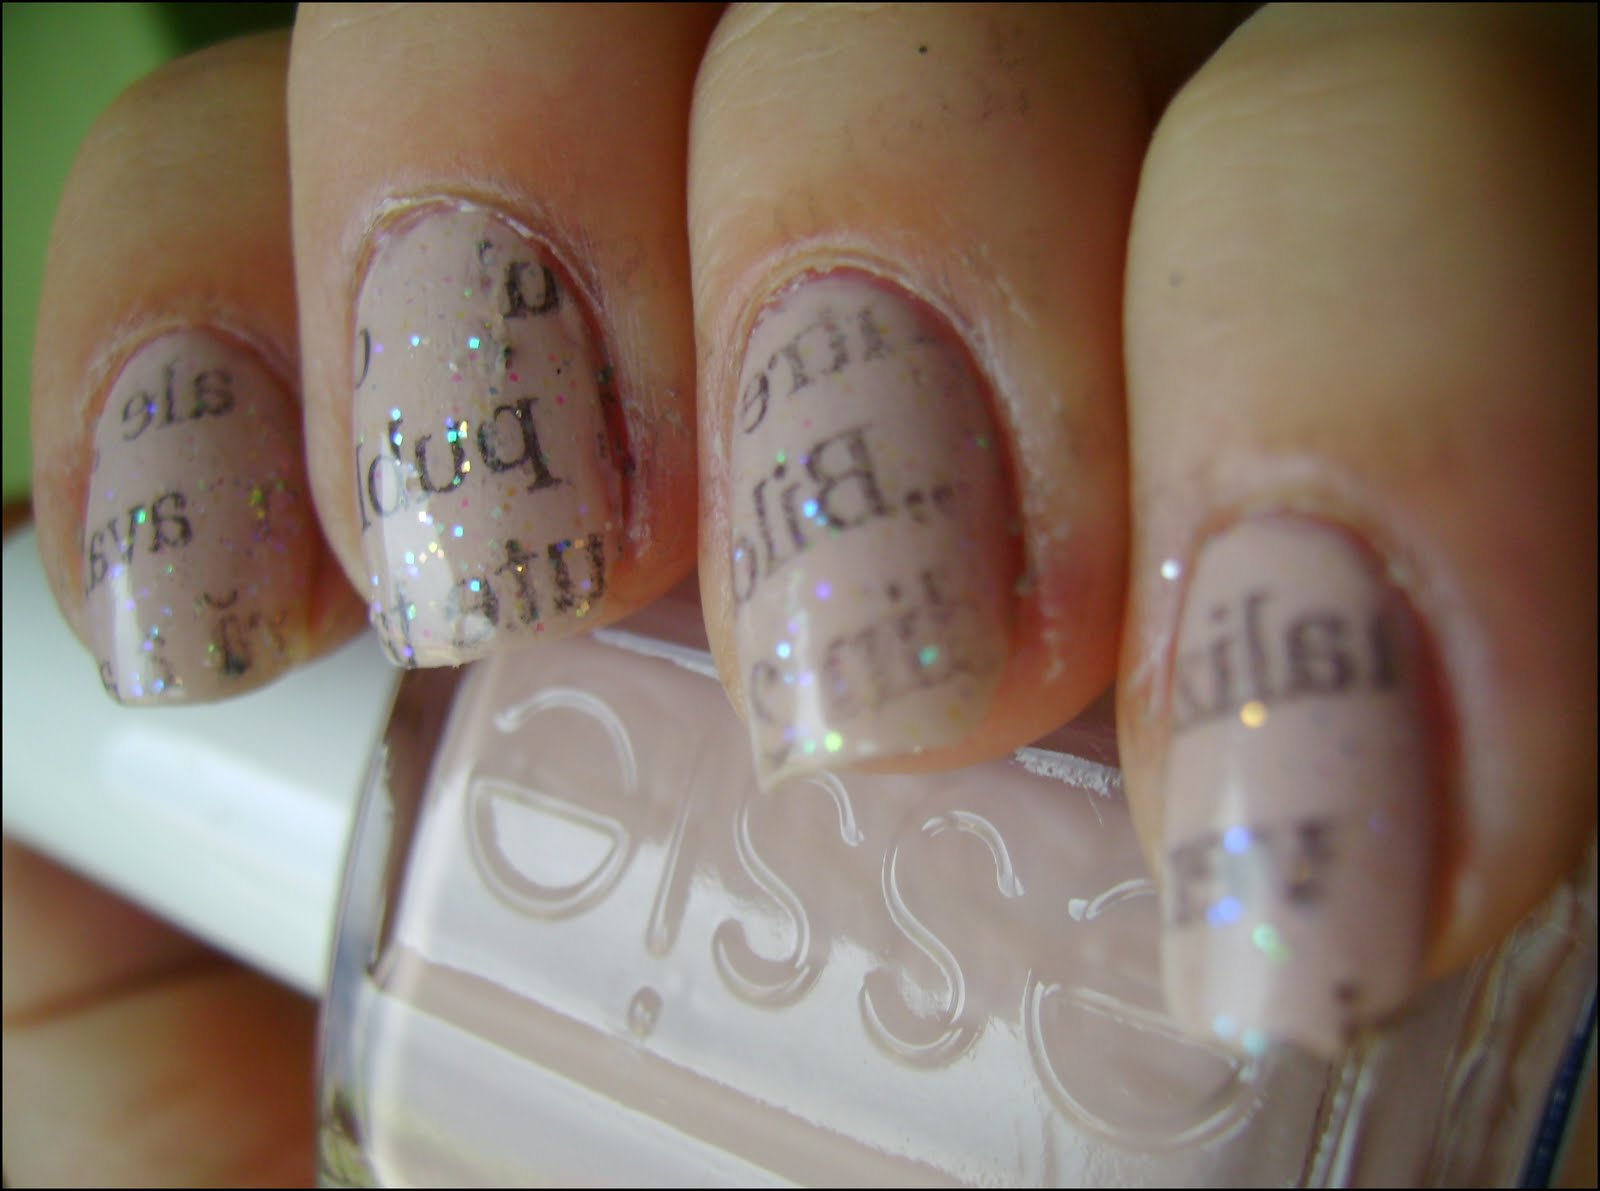 acrylic nail art designs: Newspaper nails - TUTORIAL